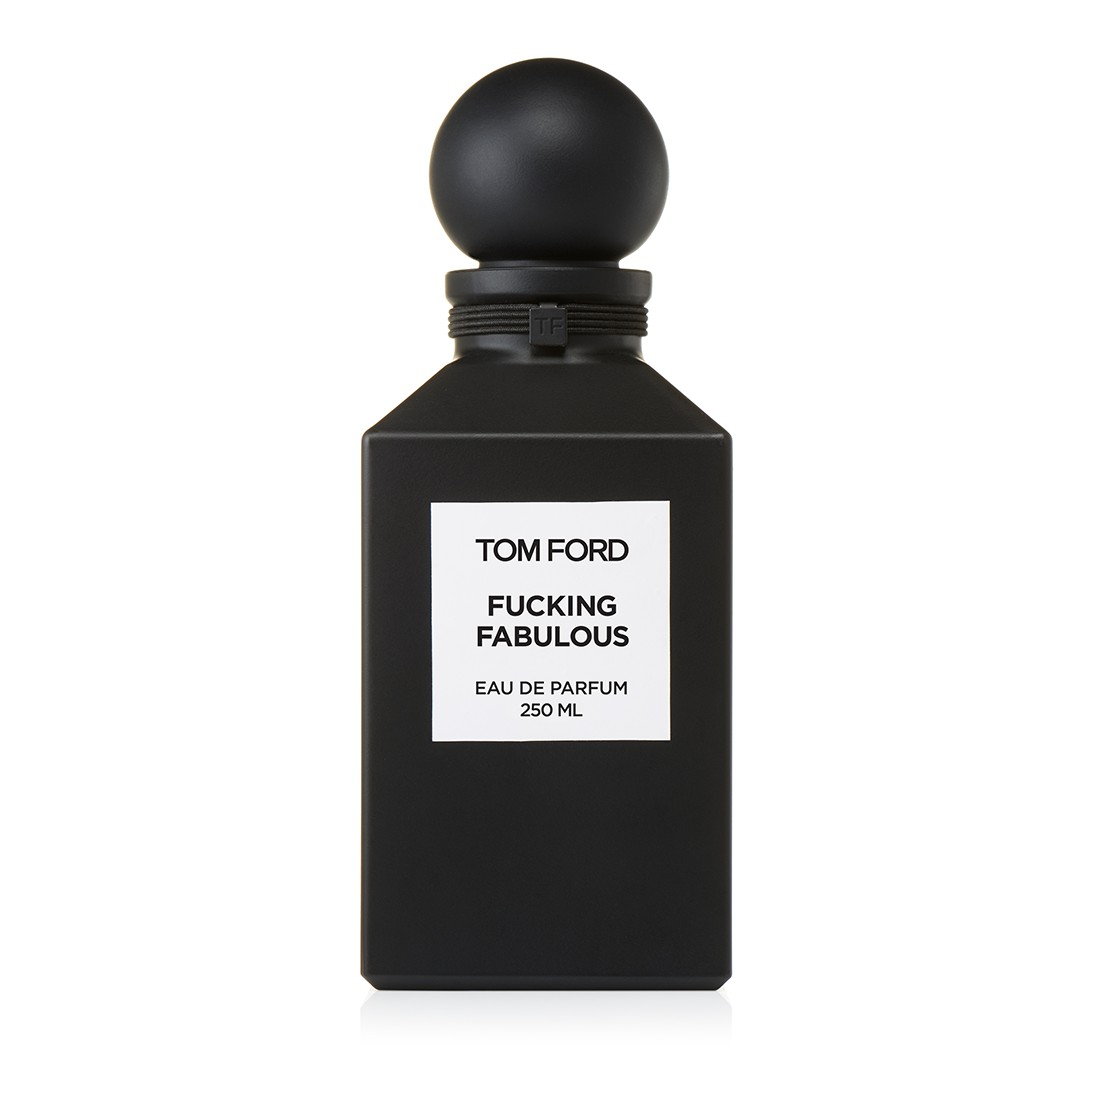 Изображение 2 Fucking Fabulous edp Tom Ford